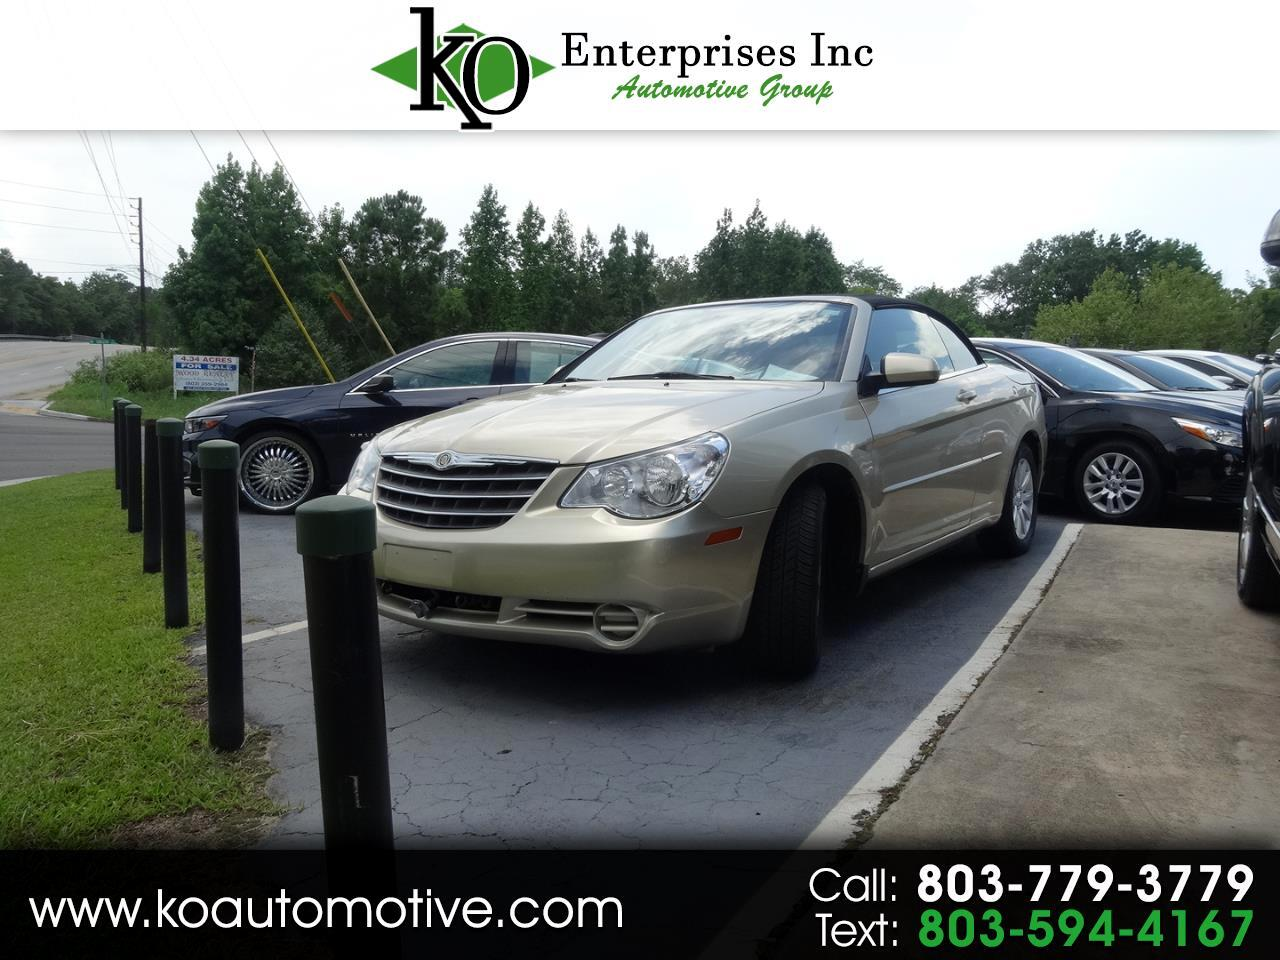 Cars For Sale Columbia Sc >> Used Cars For Sale Columbia Sc 29201 K O Enterprises Of Columbia